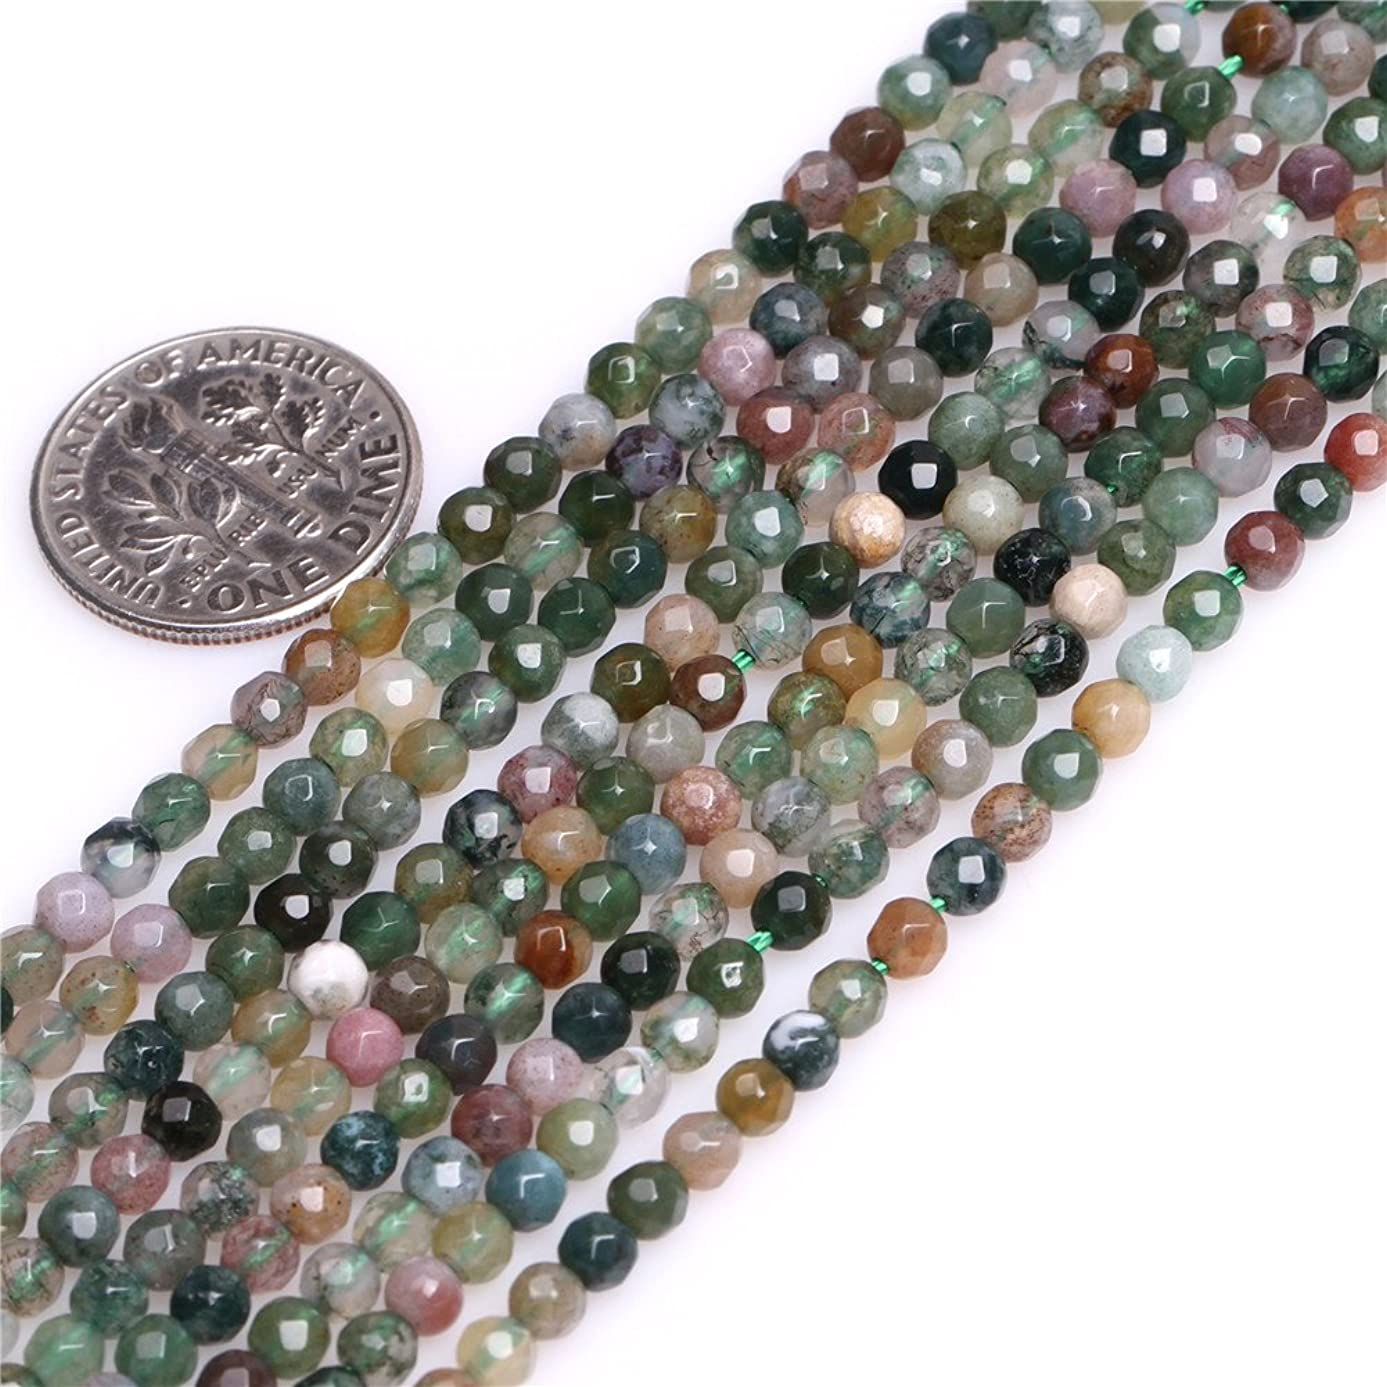 Indian Agate Beads for Jewelry Making Natural Gemstone Semi Precious 3mm Round Faceted 15